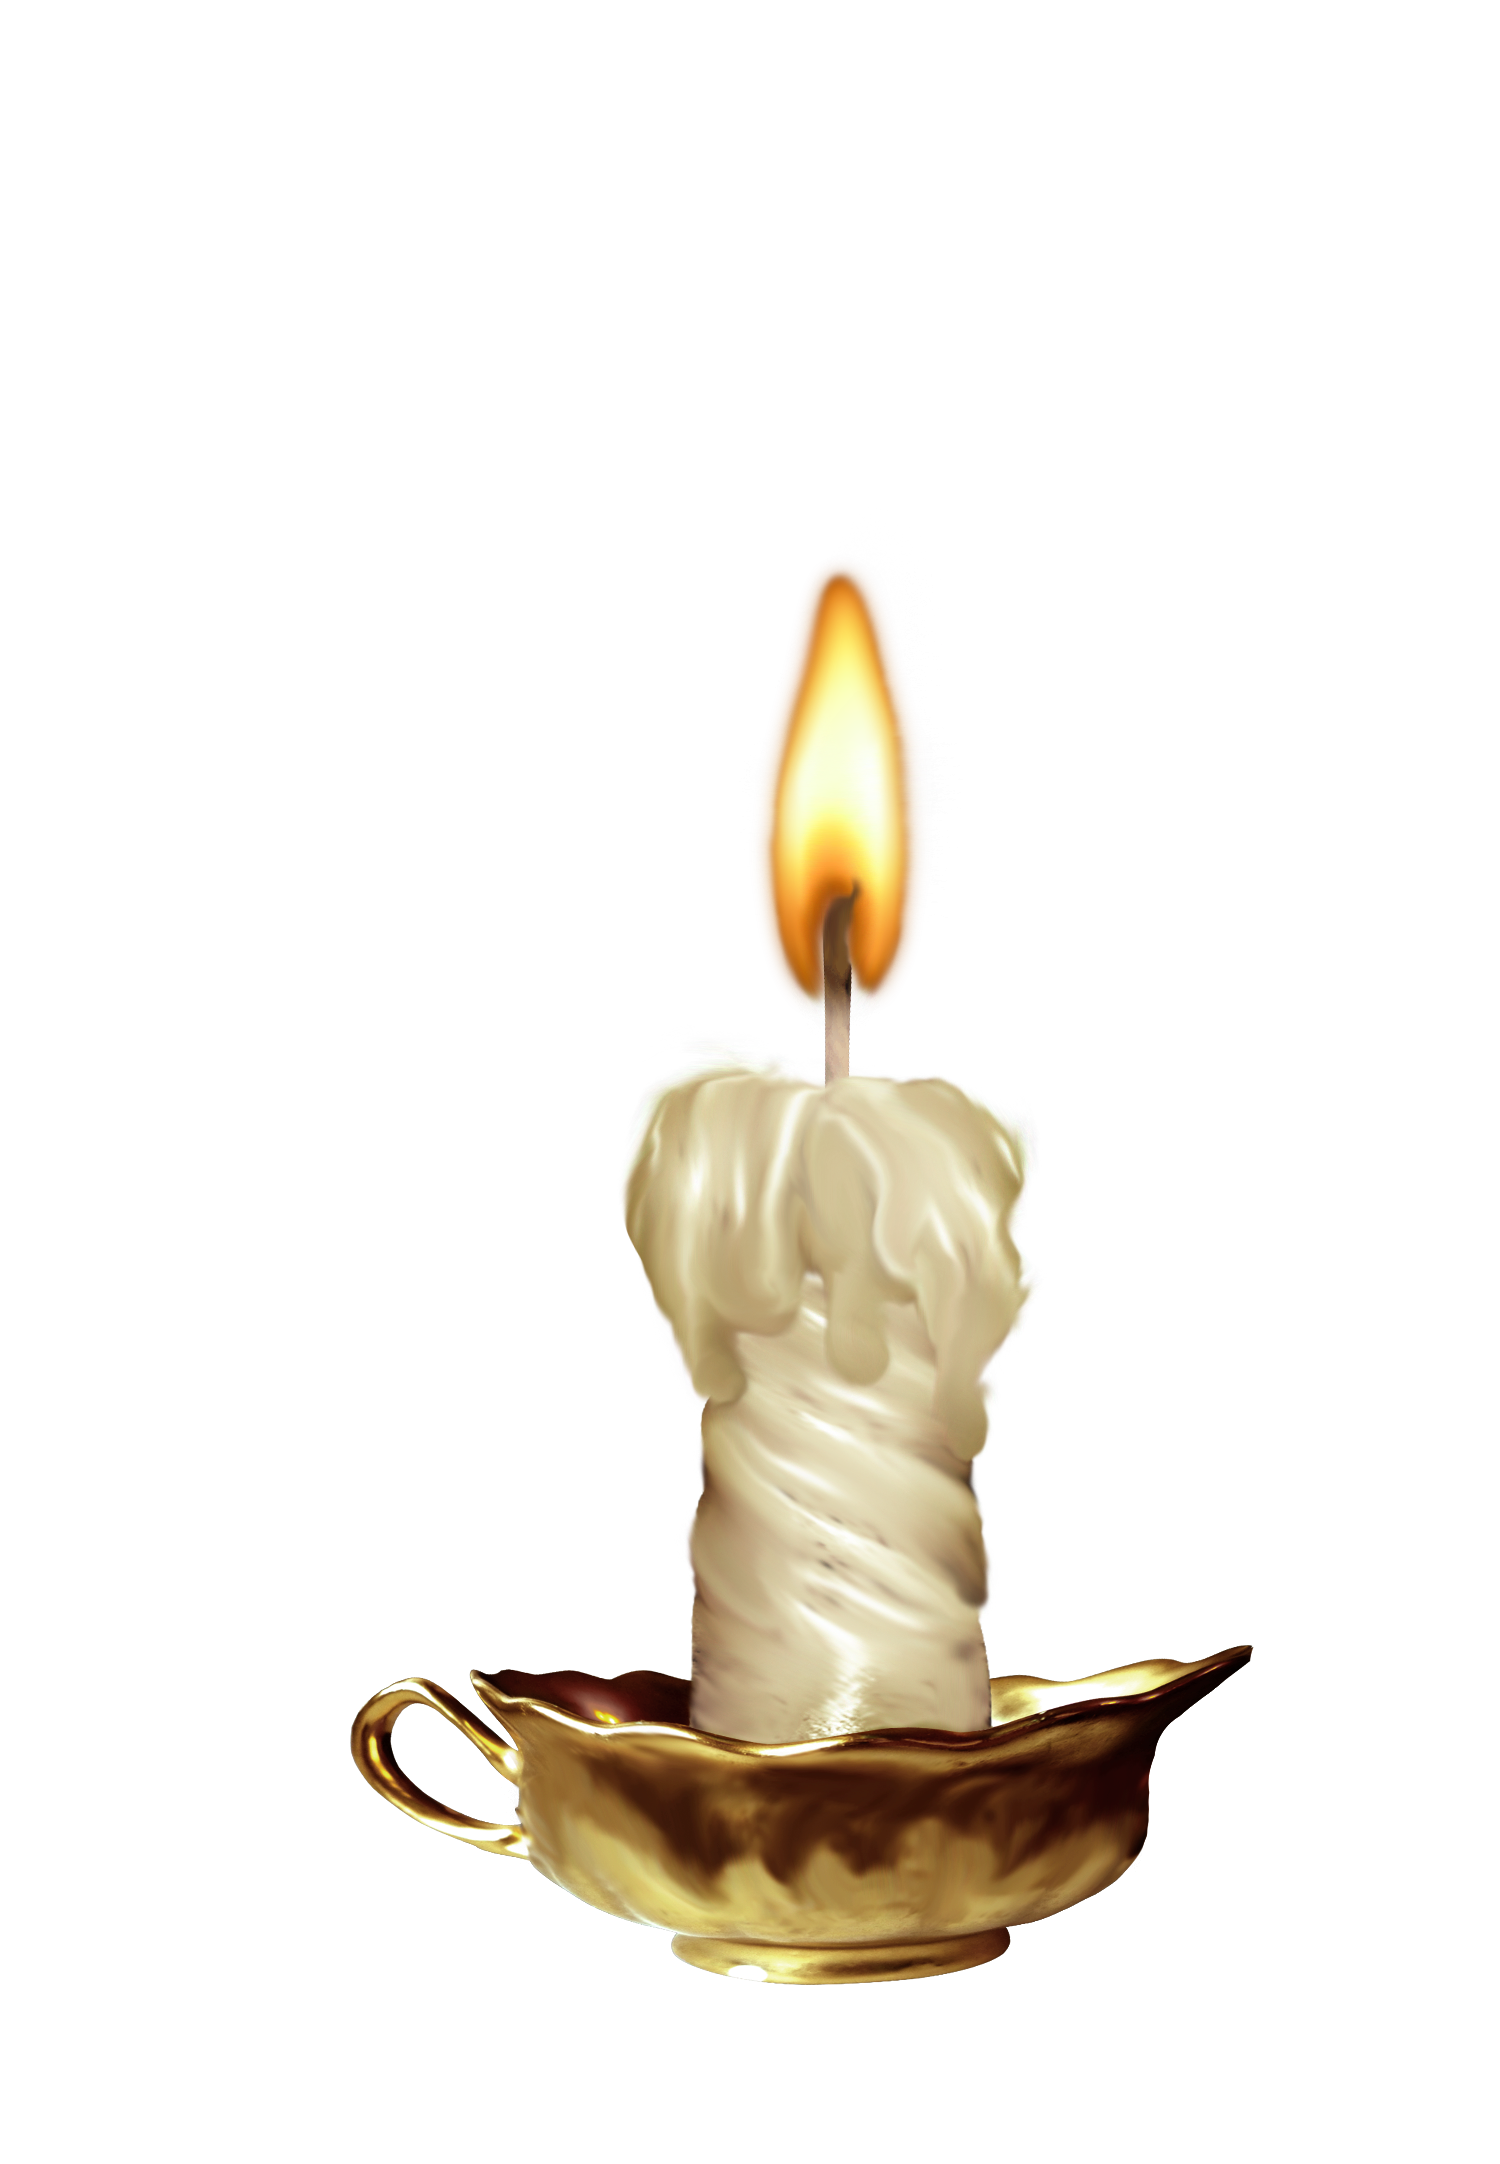 Png candles. Candle light clip art